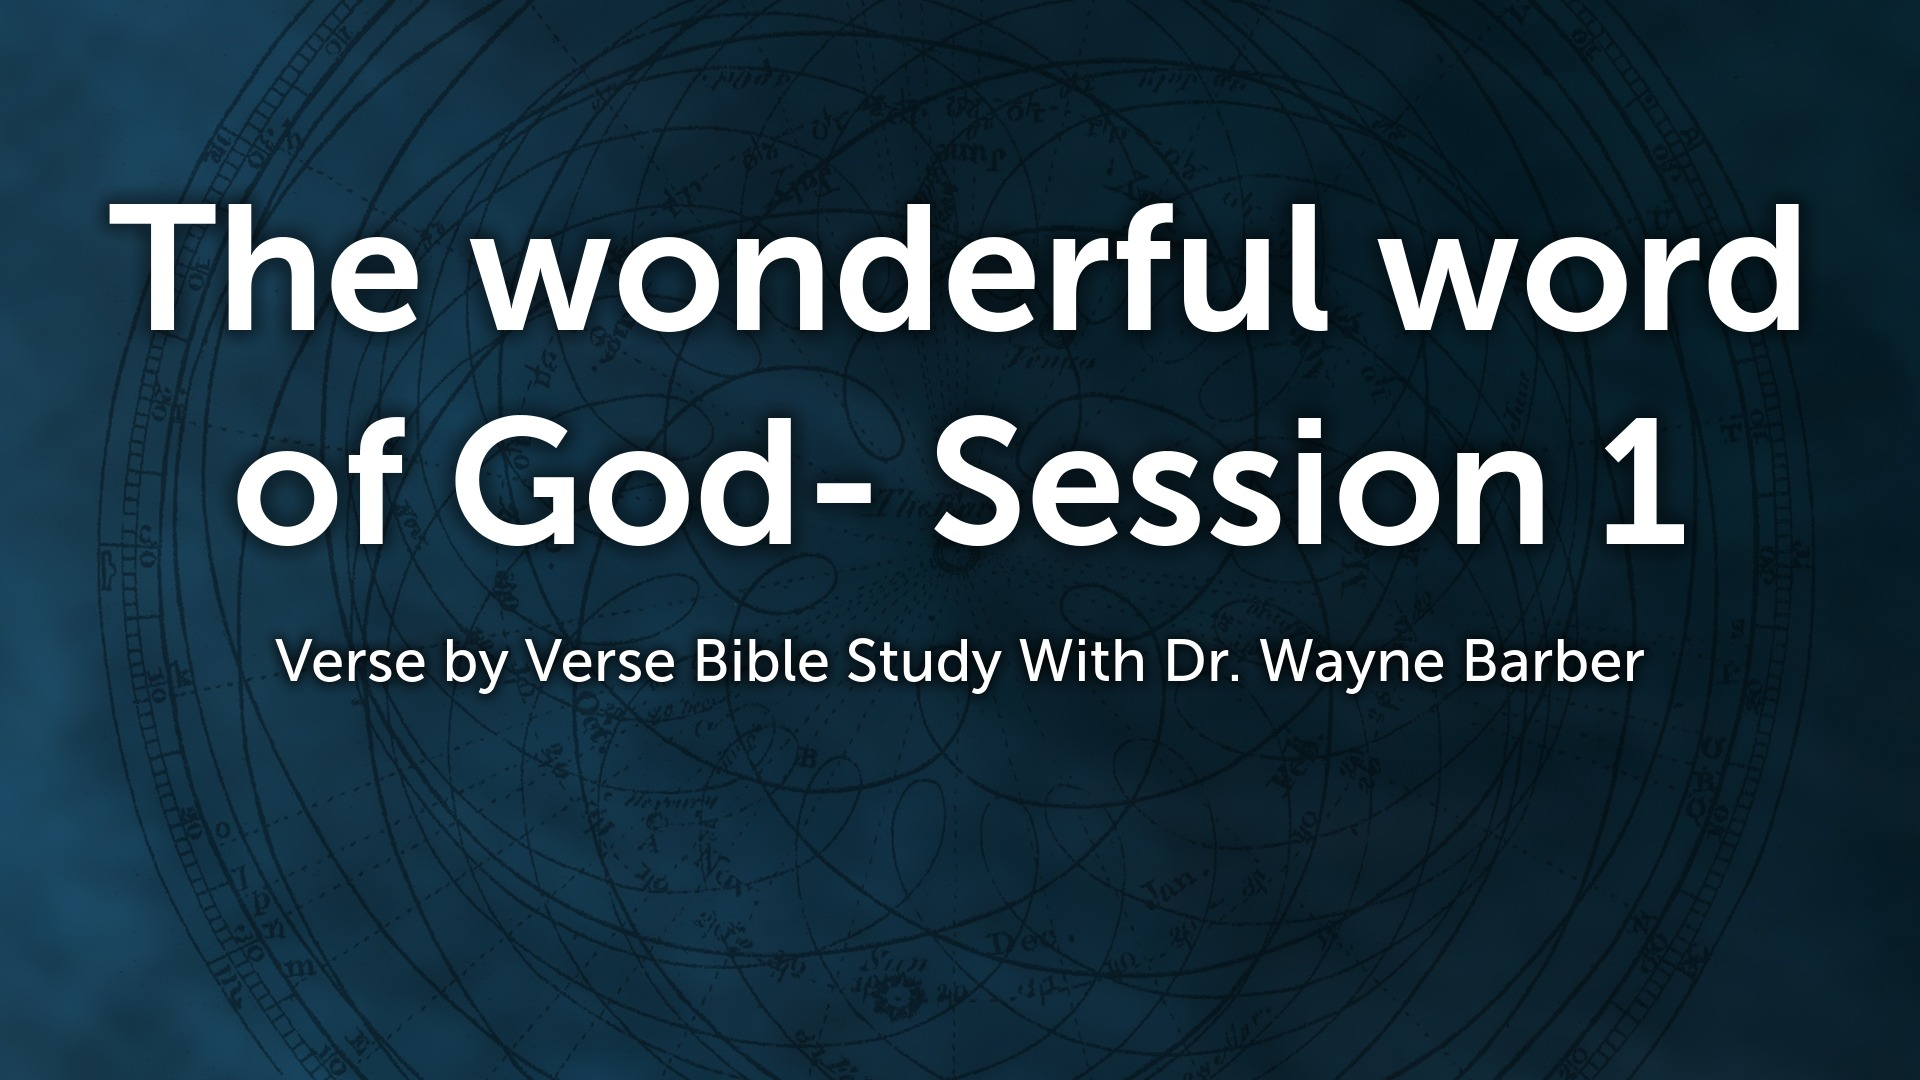 John ankerberg show faithlife the wonderful word of god session 1 fandeluxe Image collections